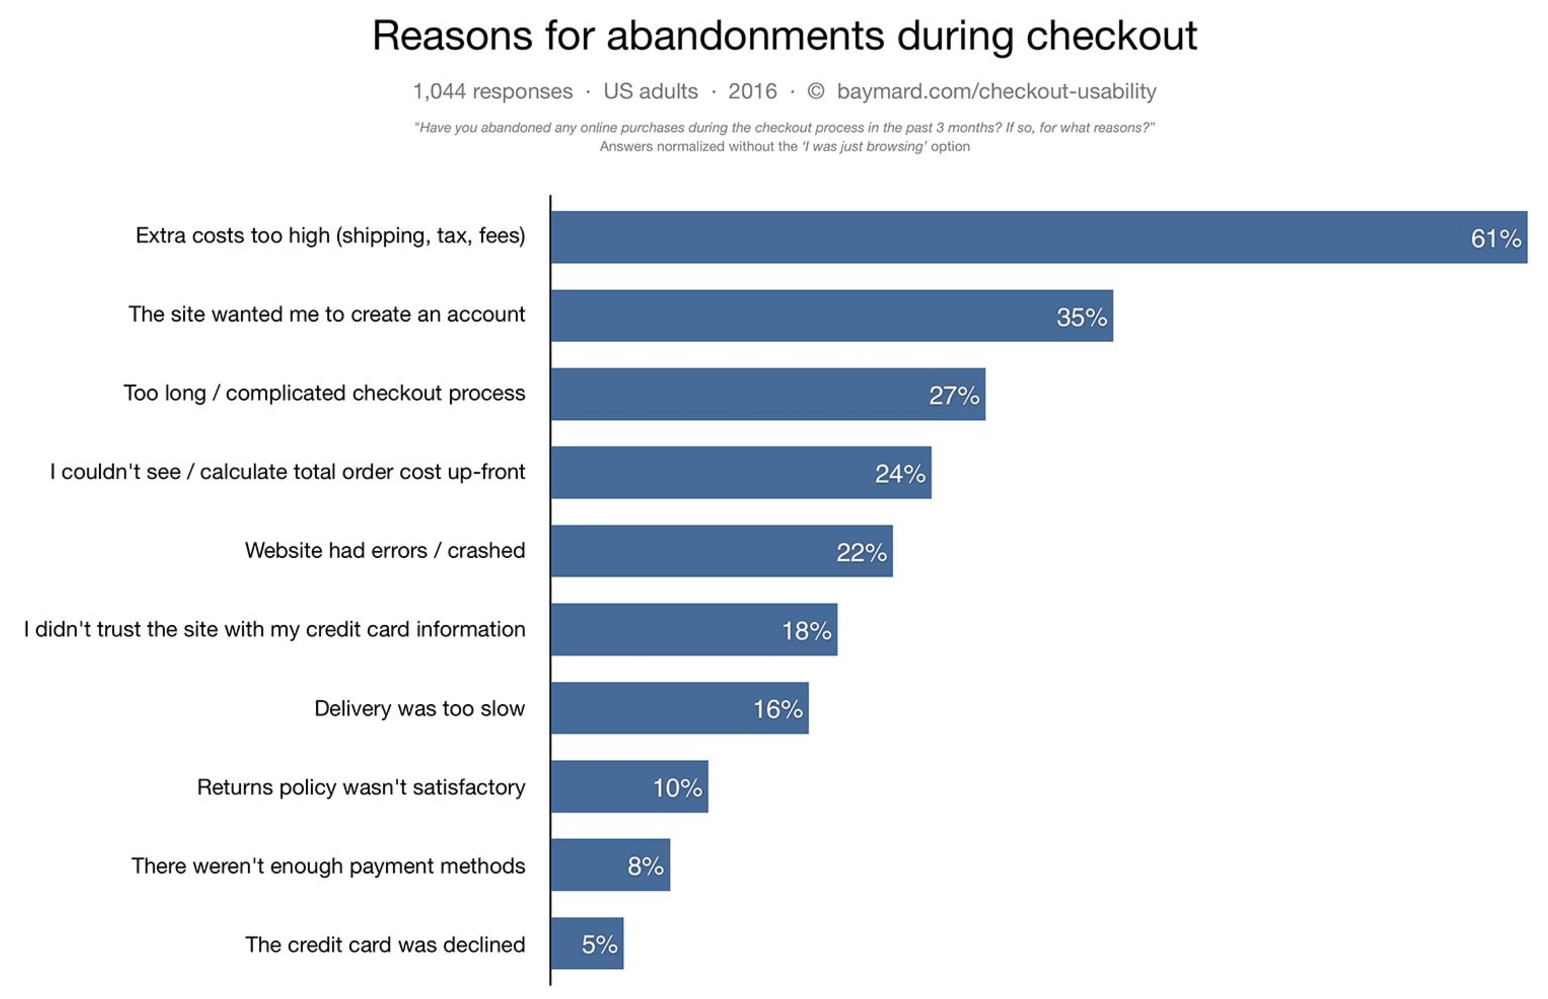 Reasons for eCommerce Shopping Cart Abandonment